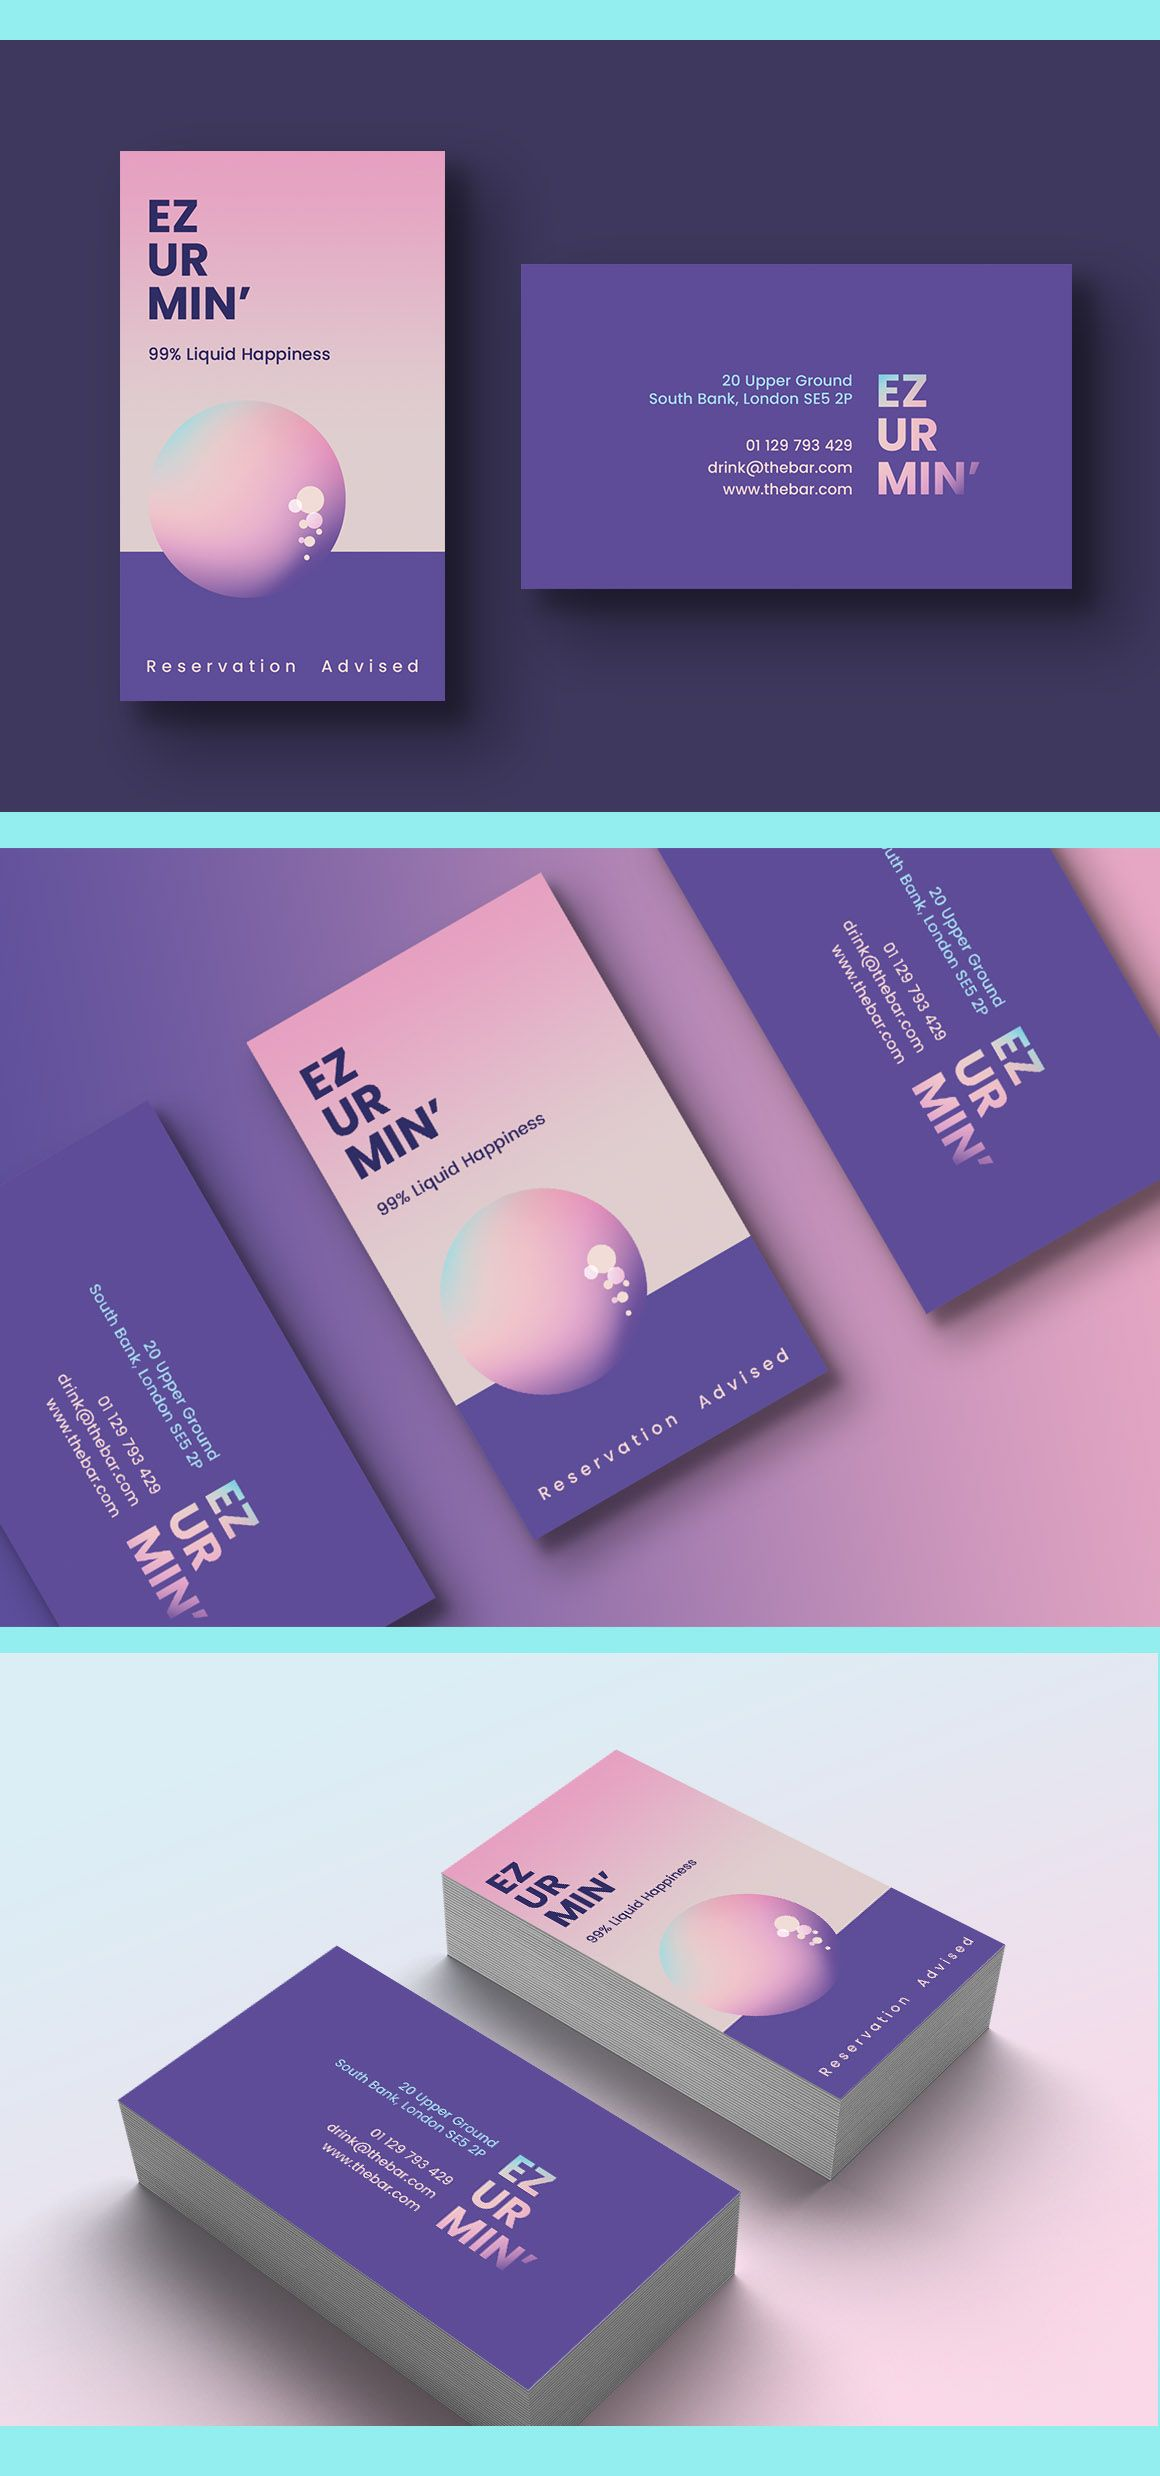 Cocktail Bar Business Card Template Graphic Design Business Card Business Card Graphic Business Card Inspiration